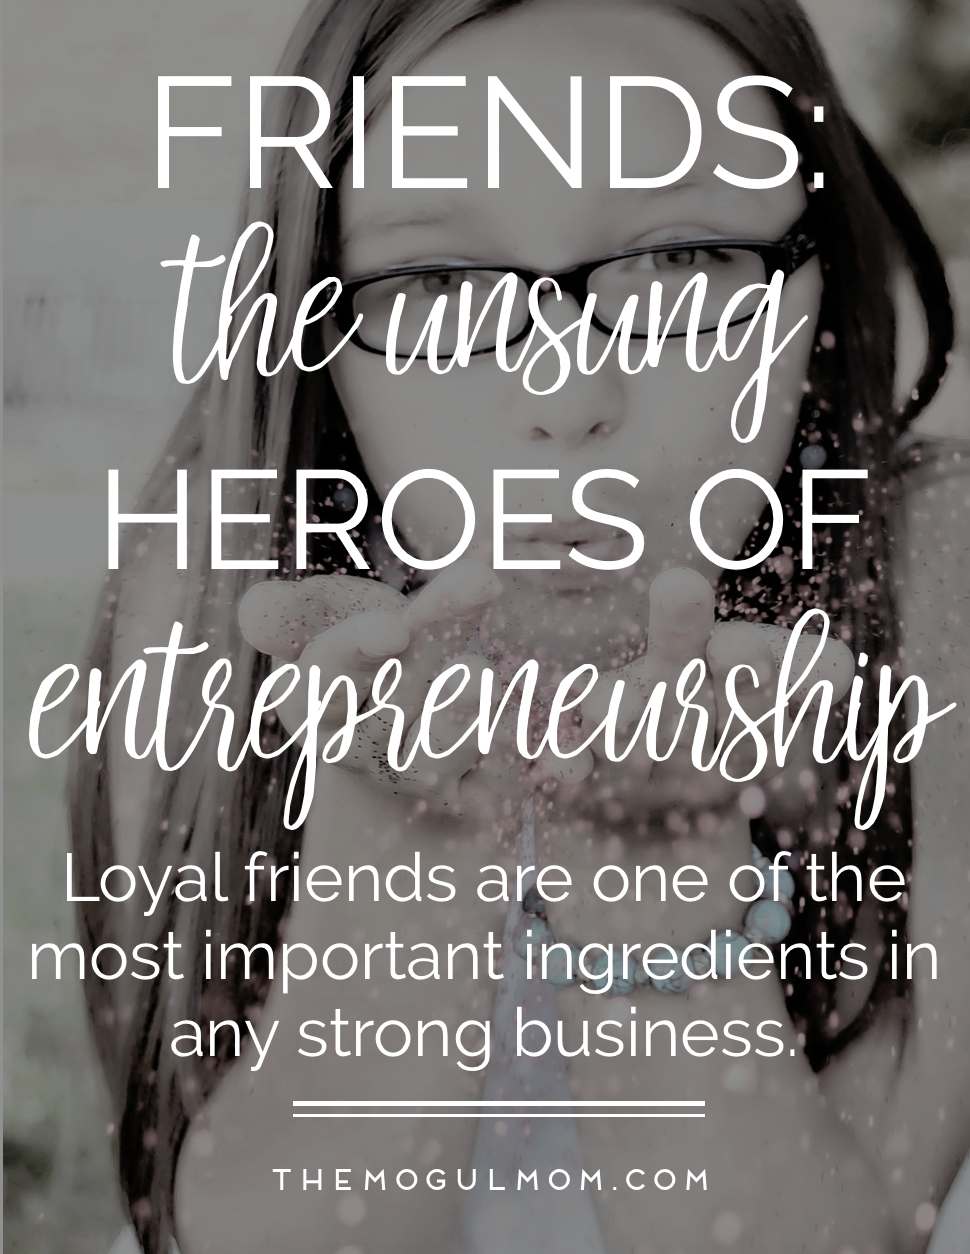 Friends: The Unsung Heroes of Entrepreneurship